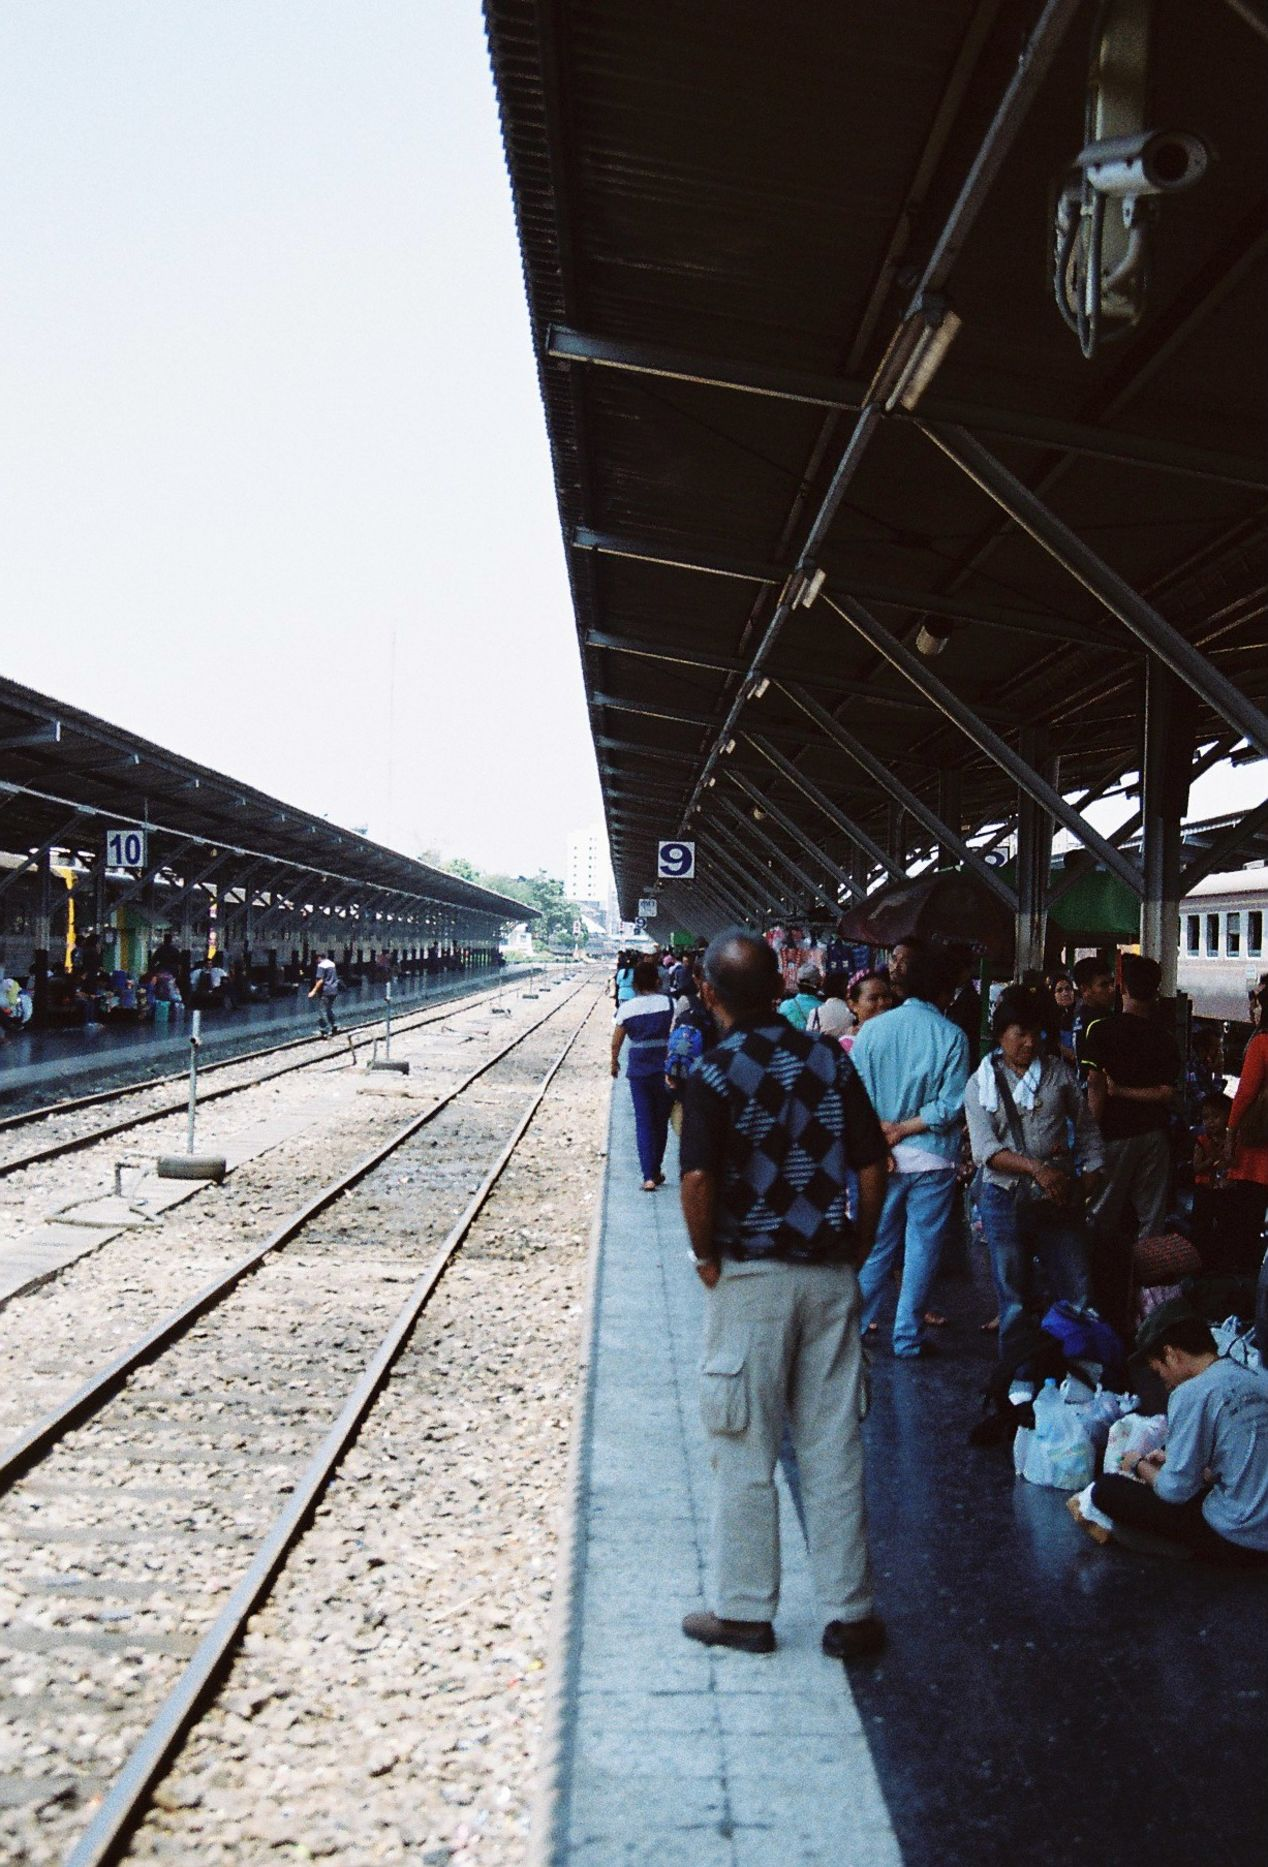 People waiting for a train. Shot with Yashica FX3 Super 2000 on Kodak Color Plus 200.